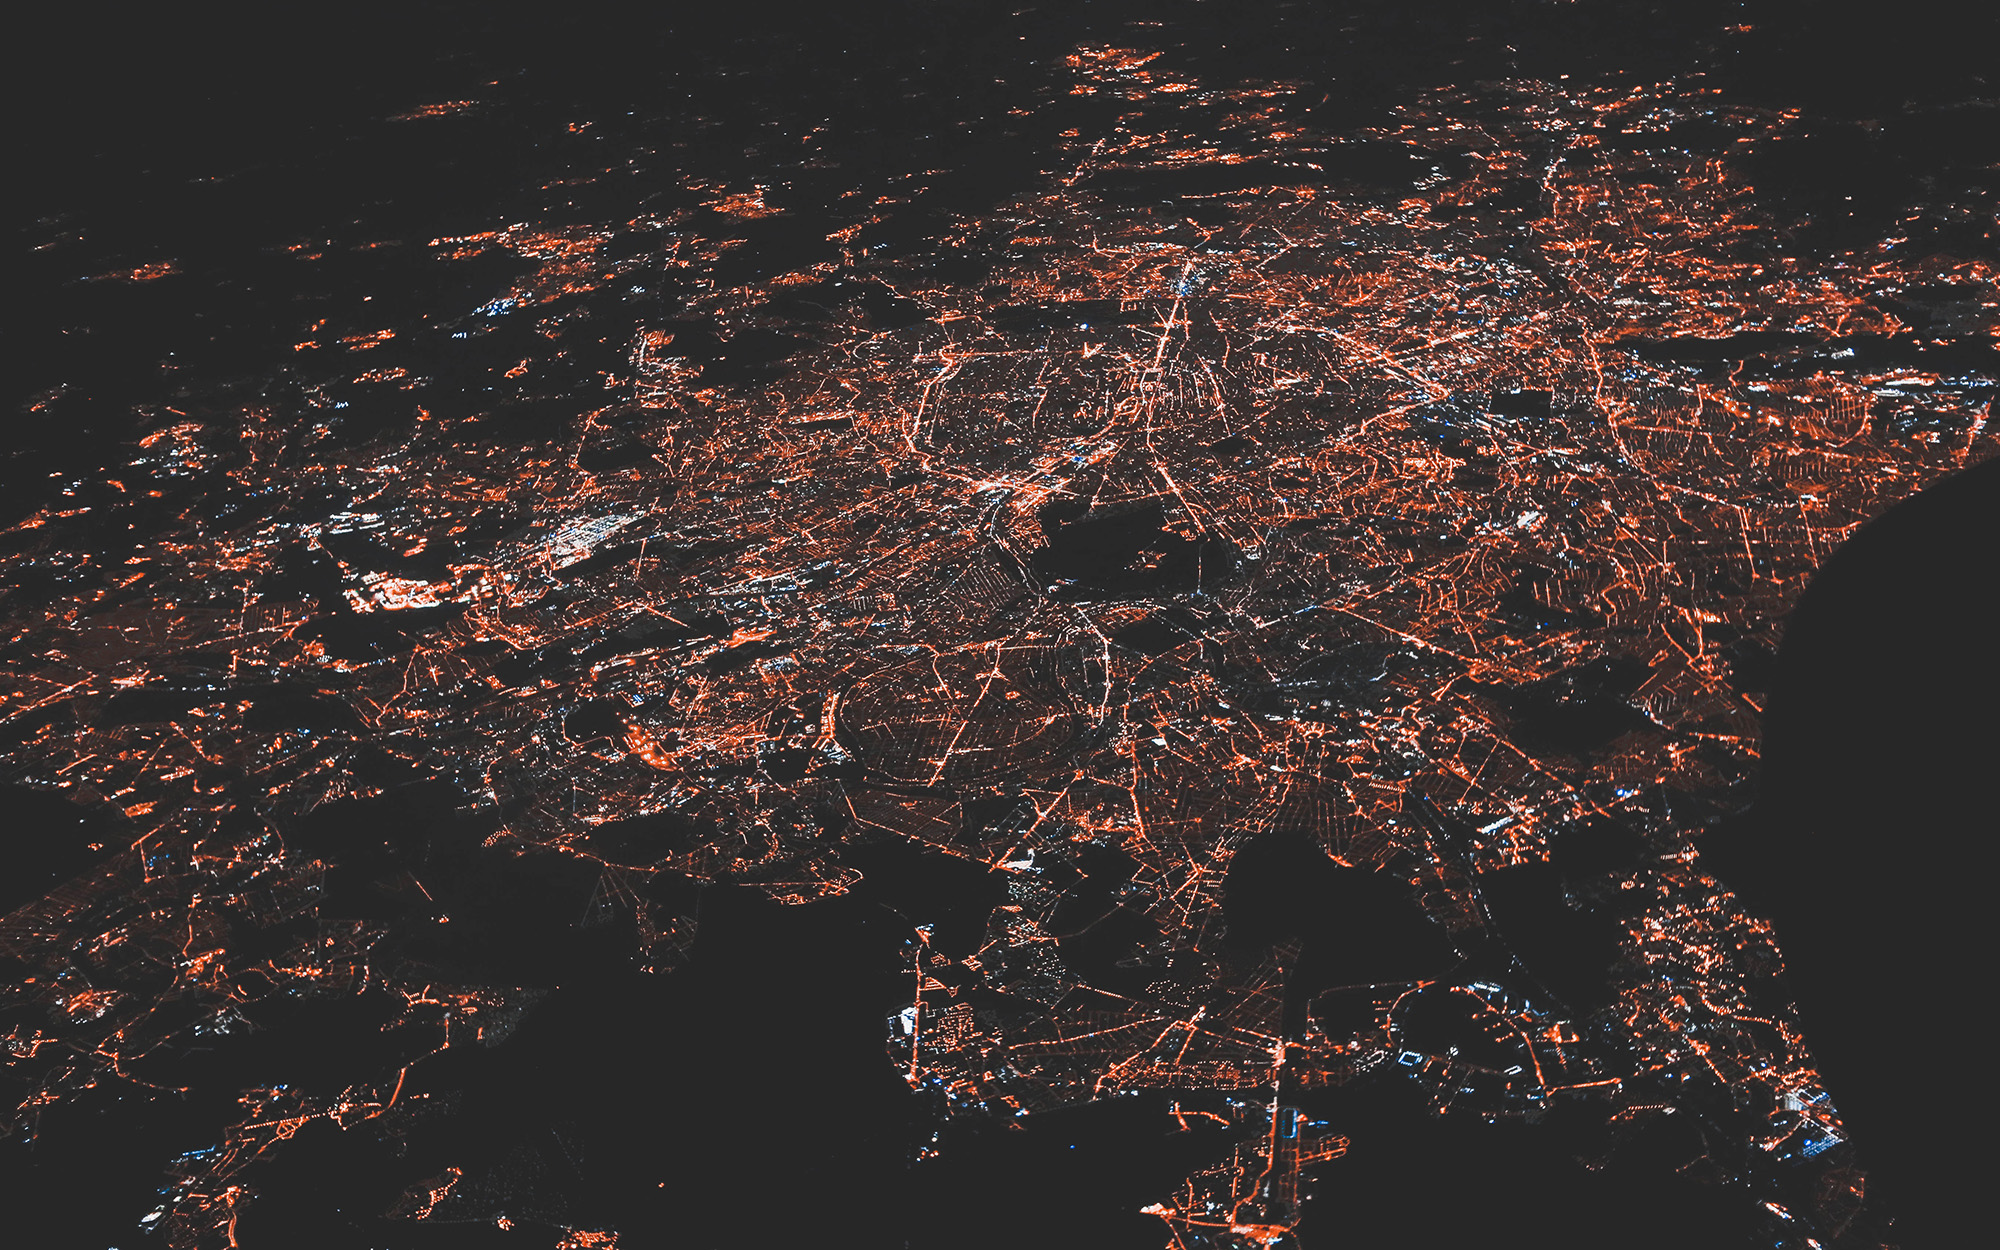 Ariel view of city at night